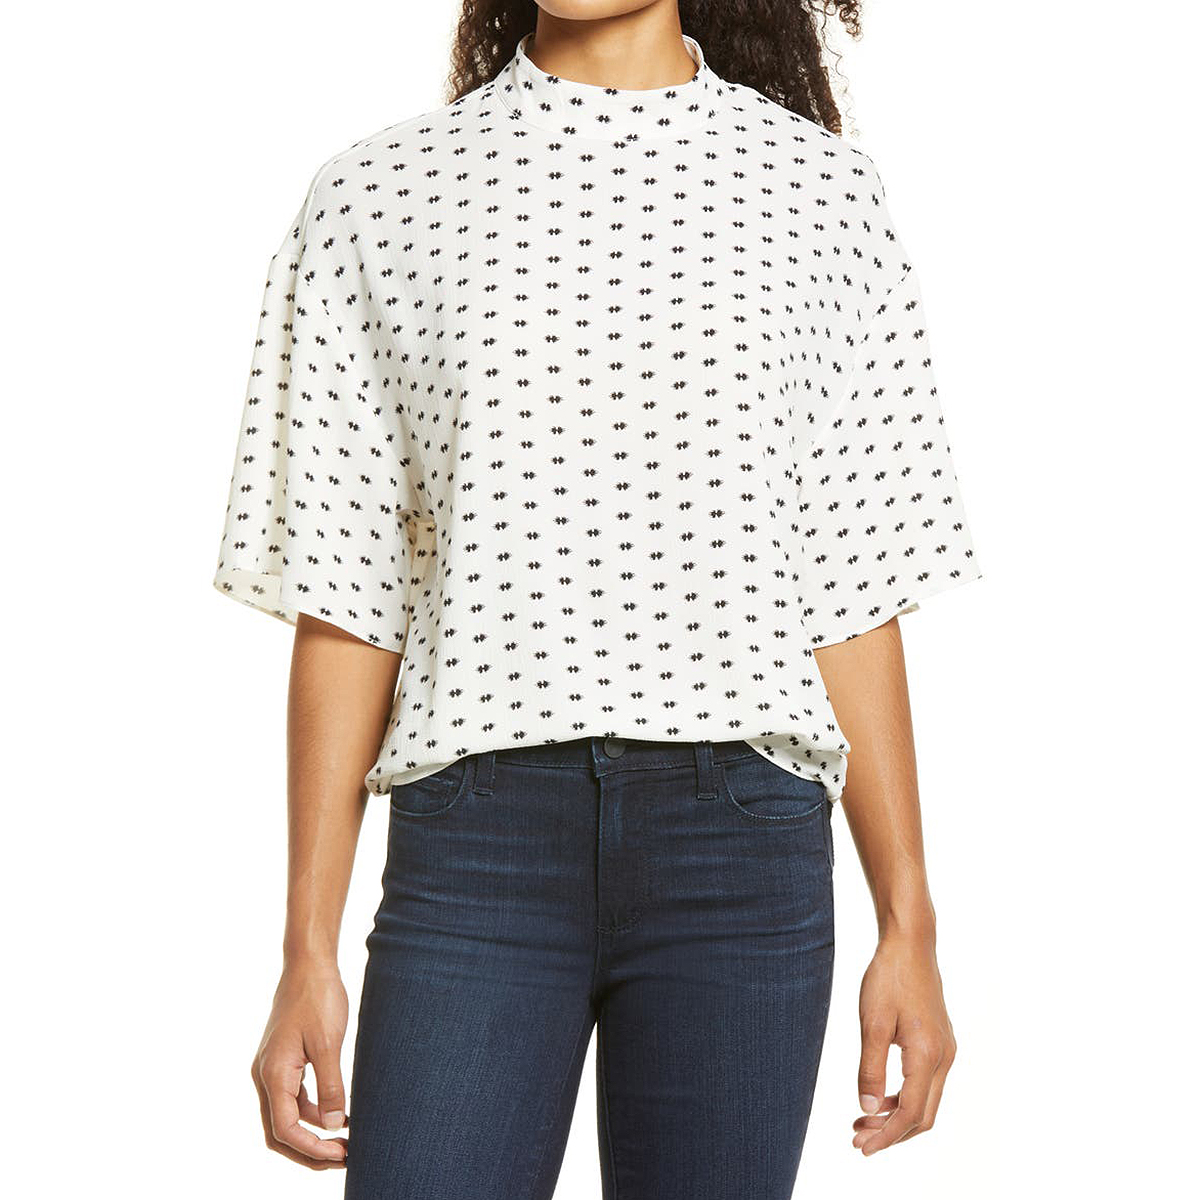 nordstrom-anniversary-sale-zara-style-vince-camuto-mock-blouse